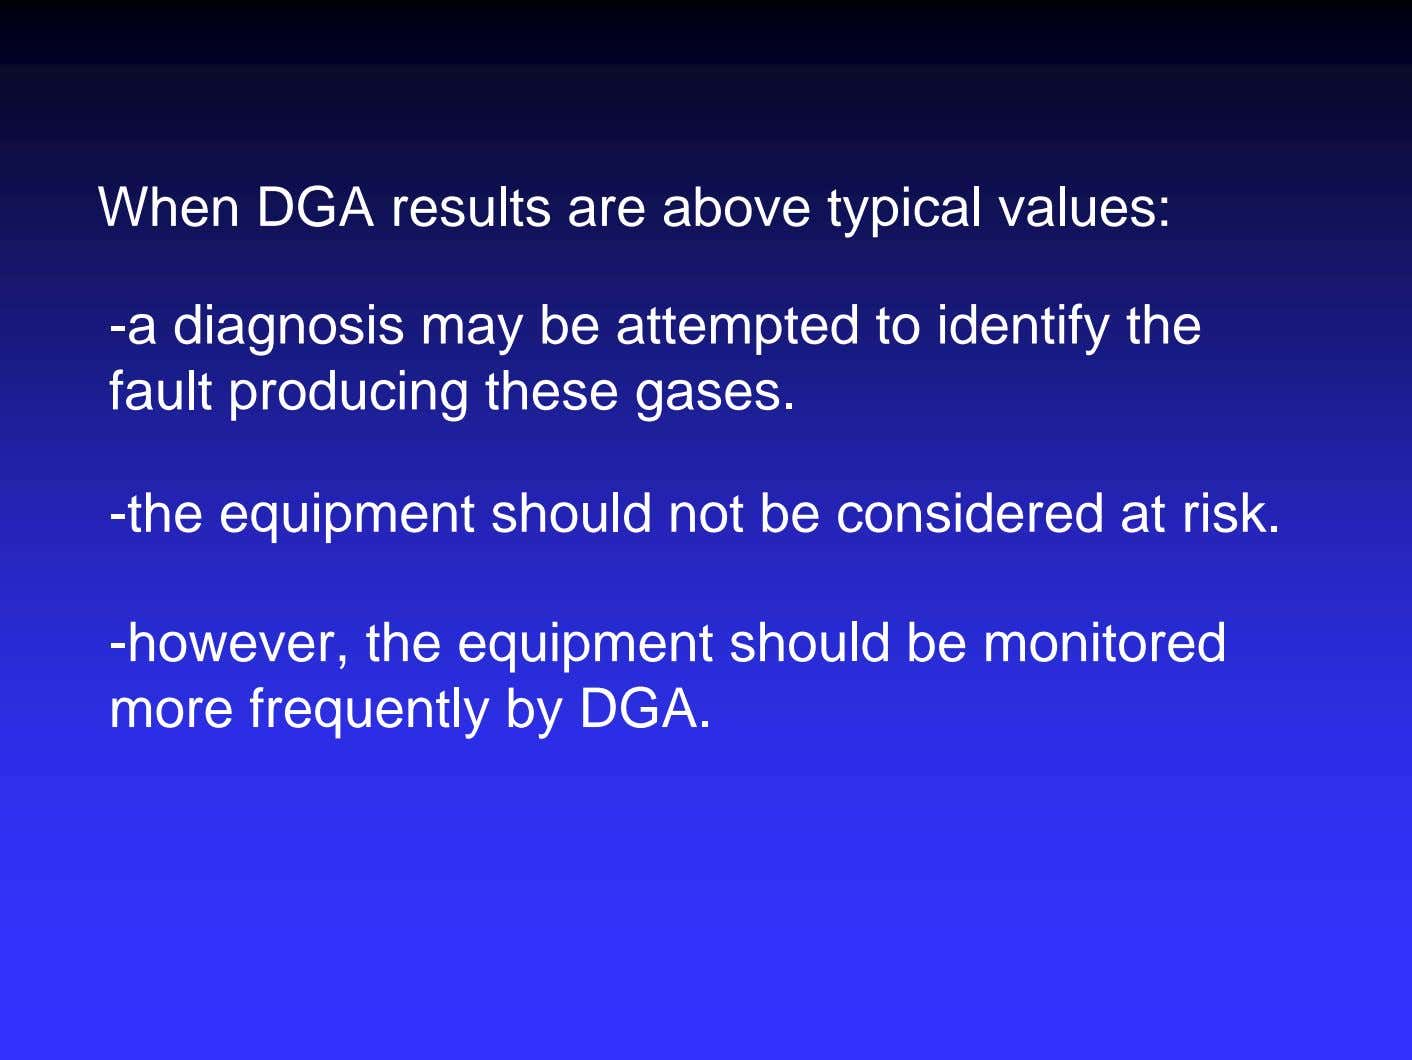 When DGA results are above typical values: -a diagnosis may be attempted to identify the